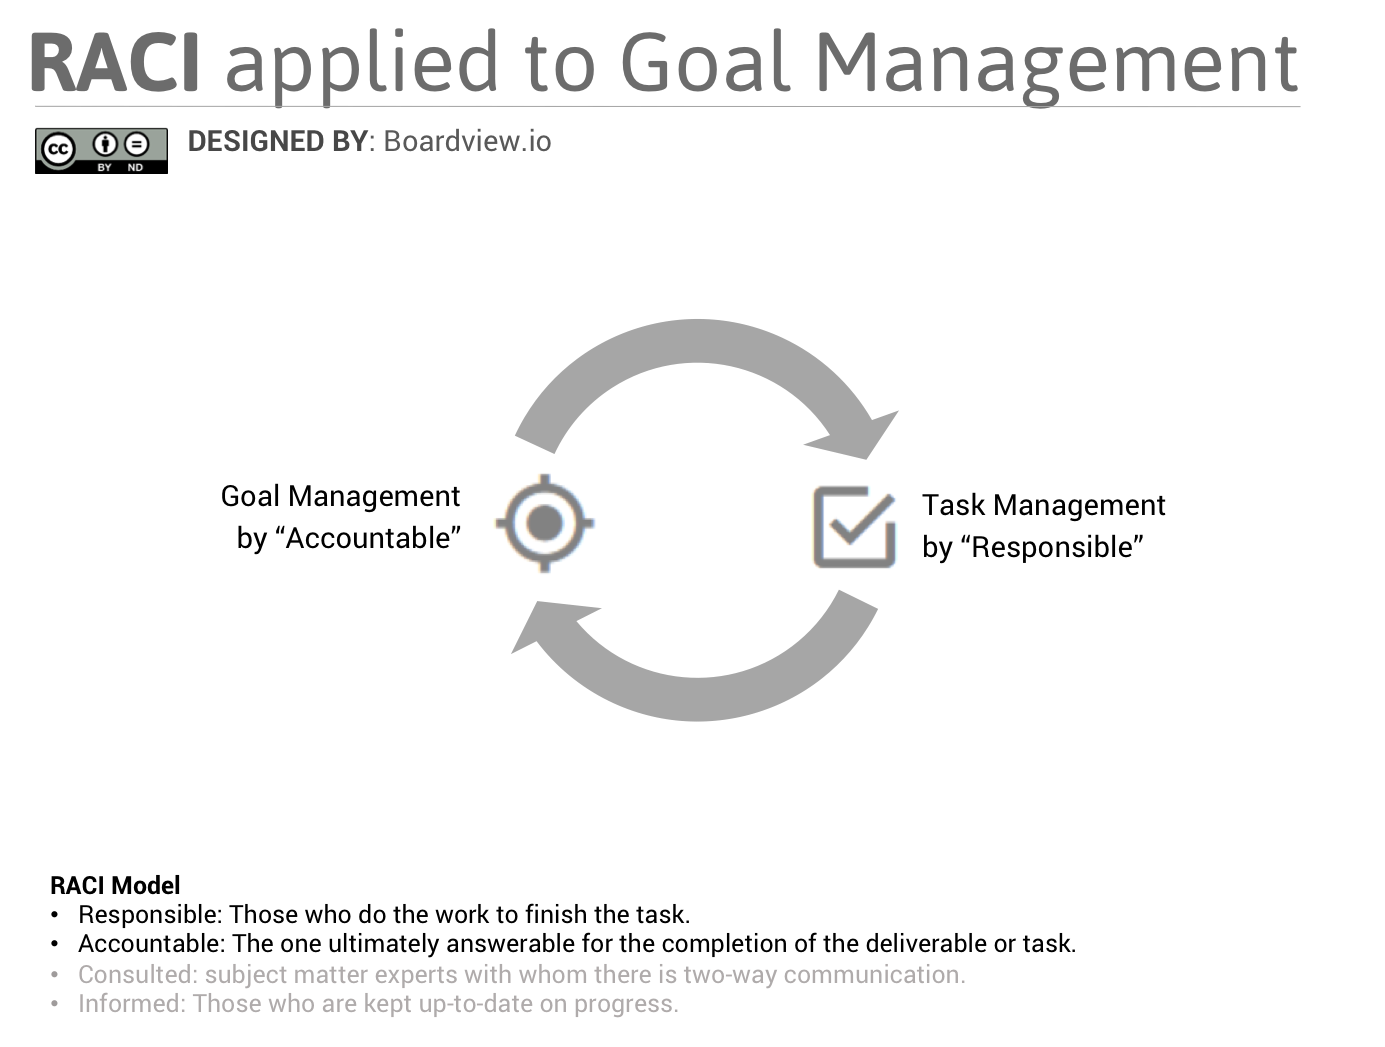 raci-applied-to-goal-management Boardview